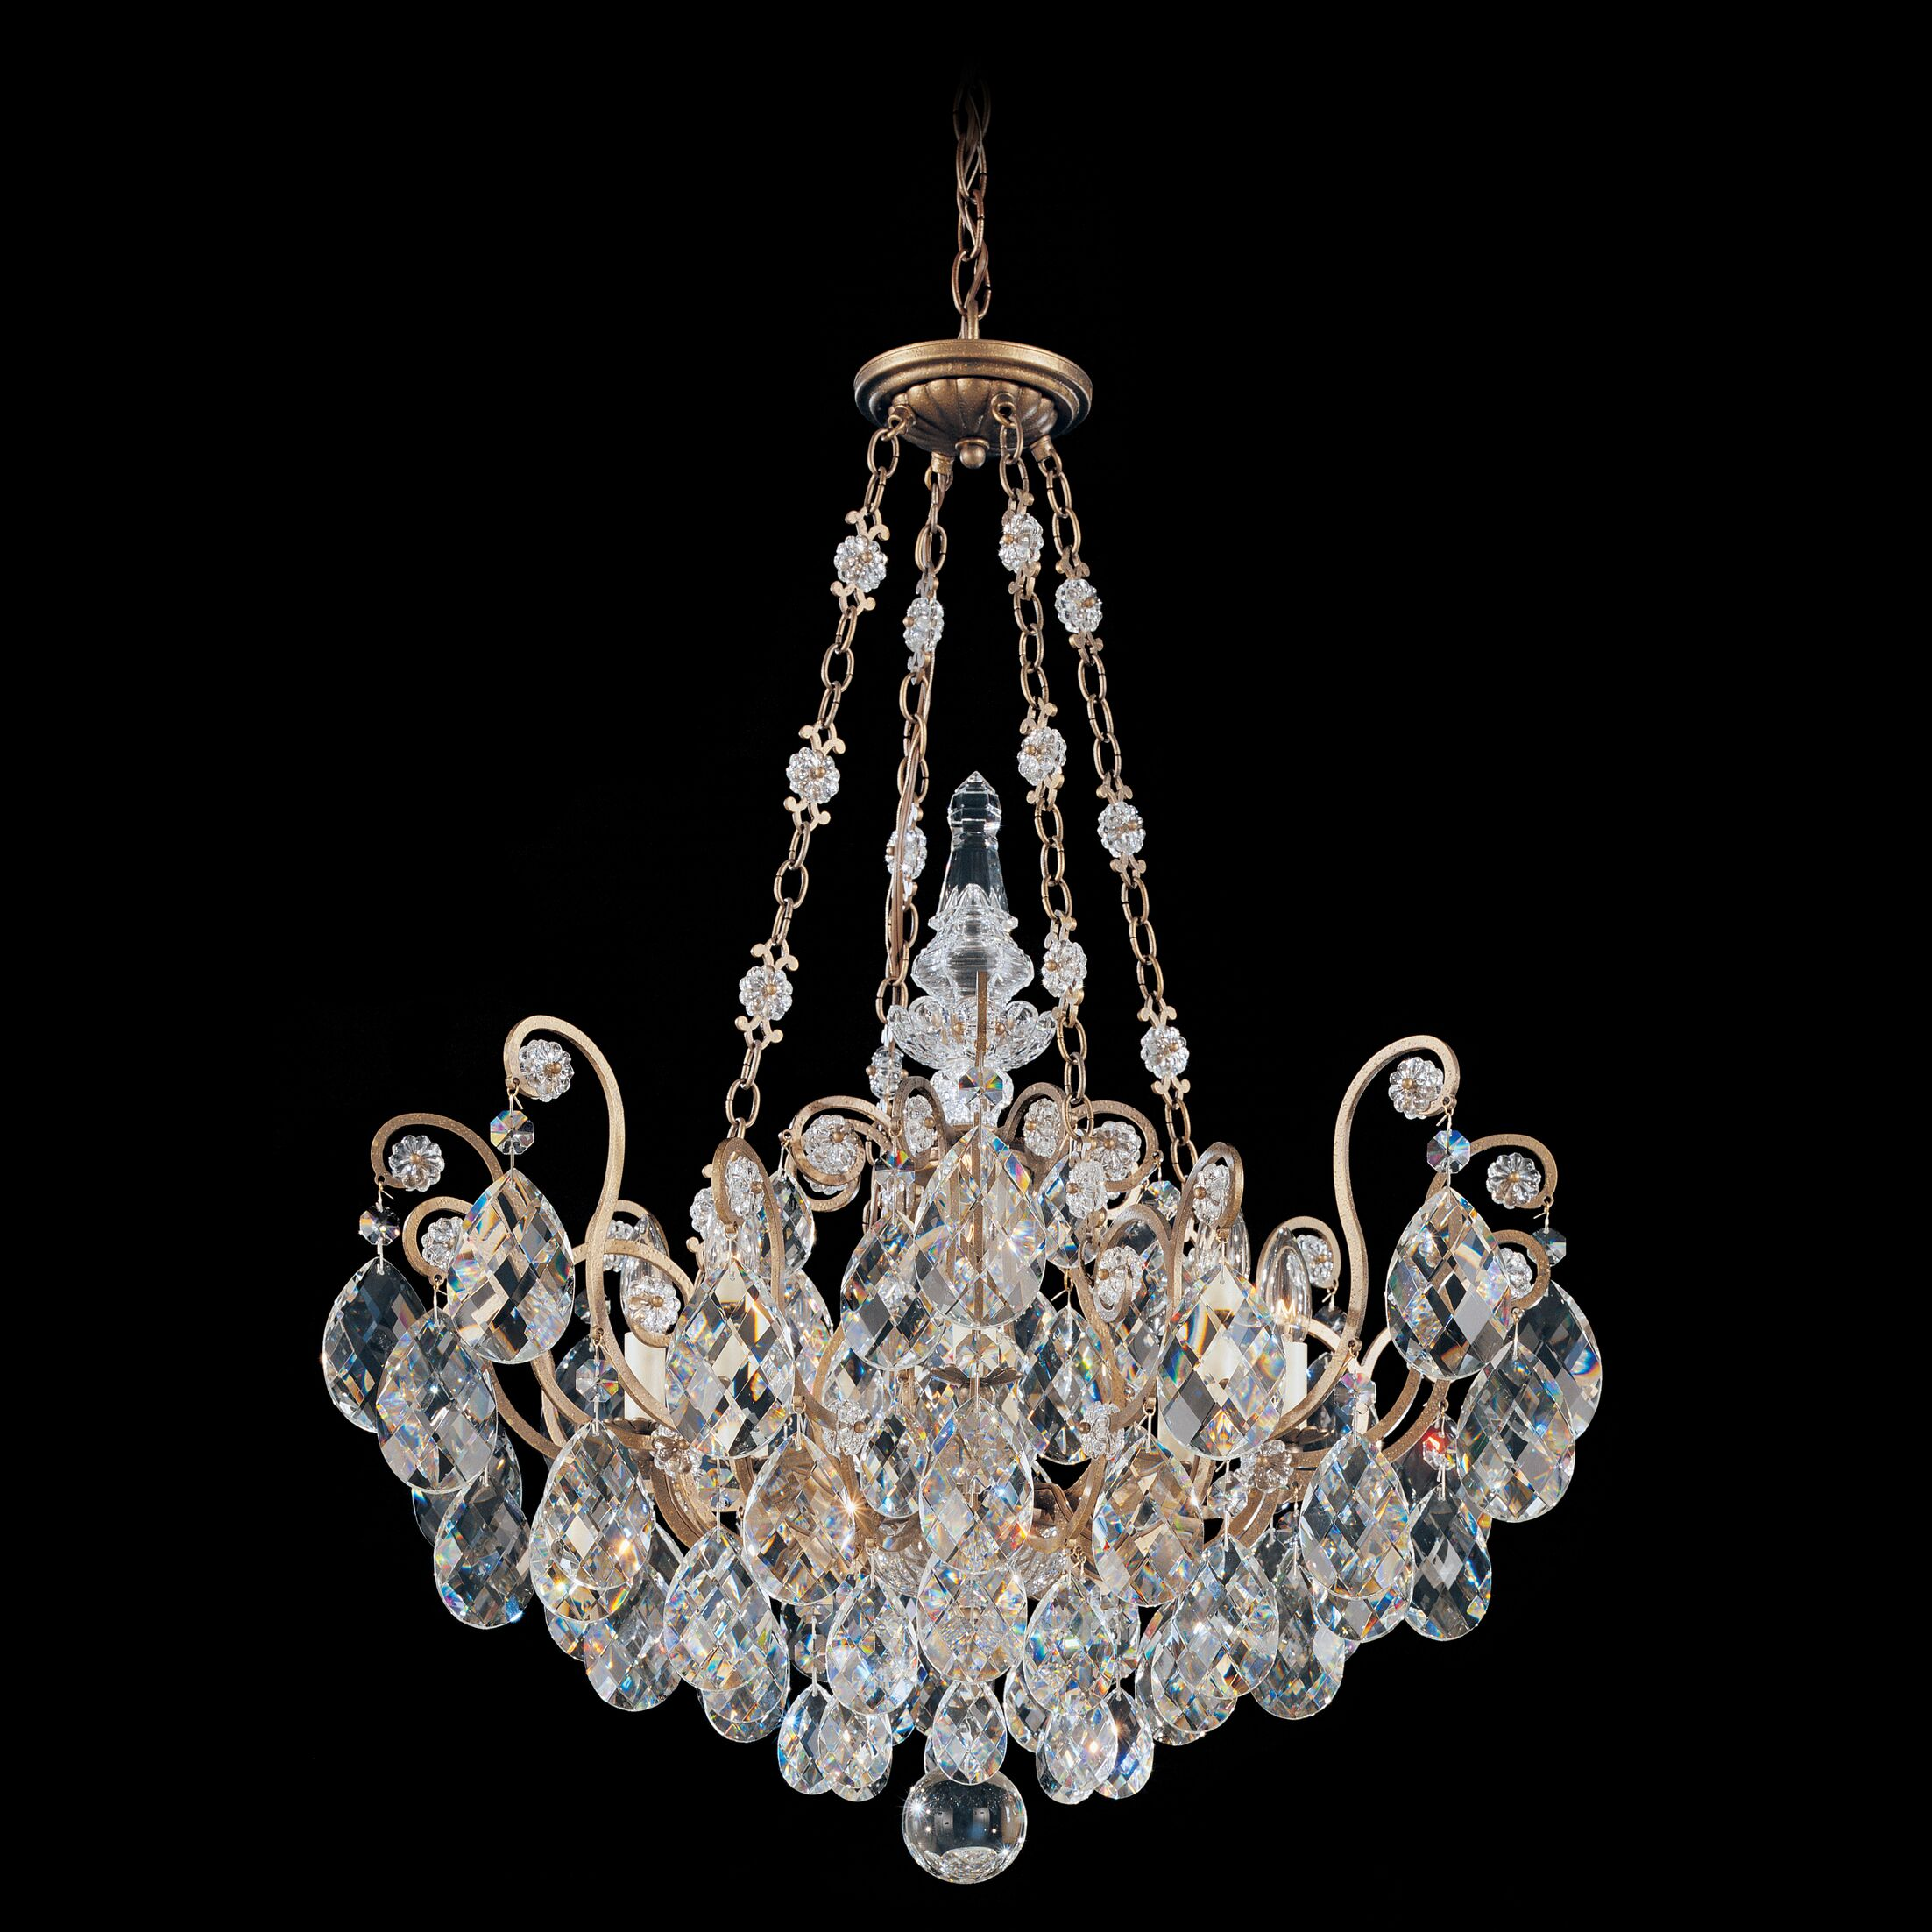 Renaissance 8-Light Candle Style Chandelier Finish / Crystal Color: Antique Silver / Strass Clear